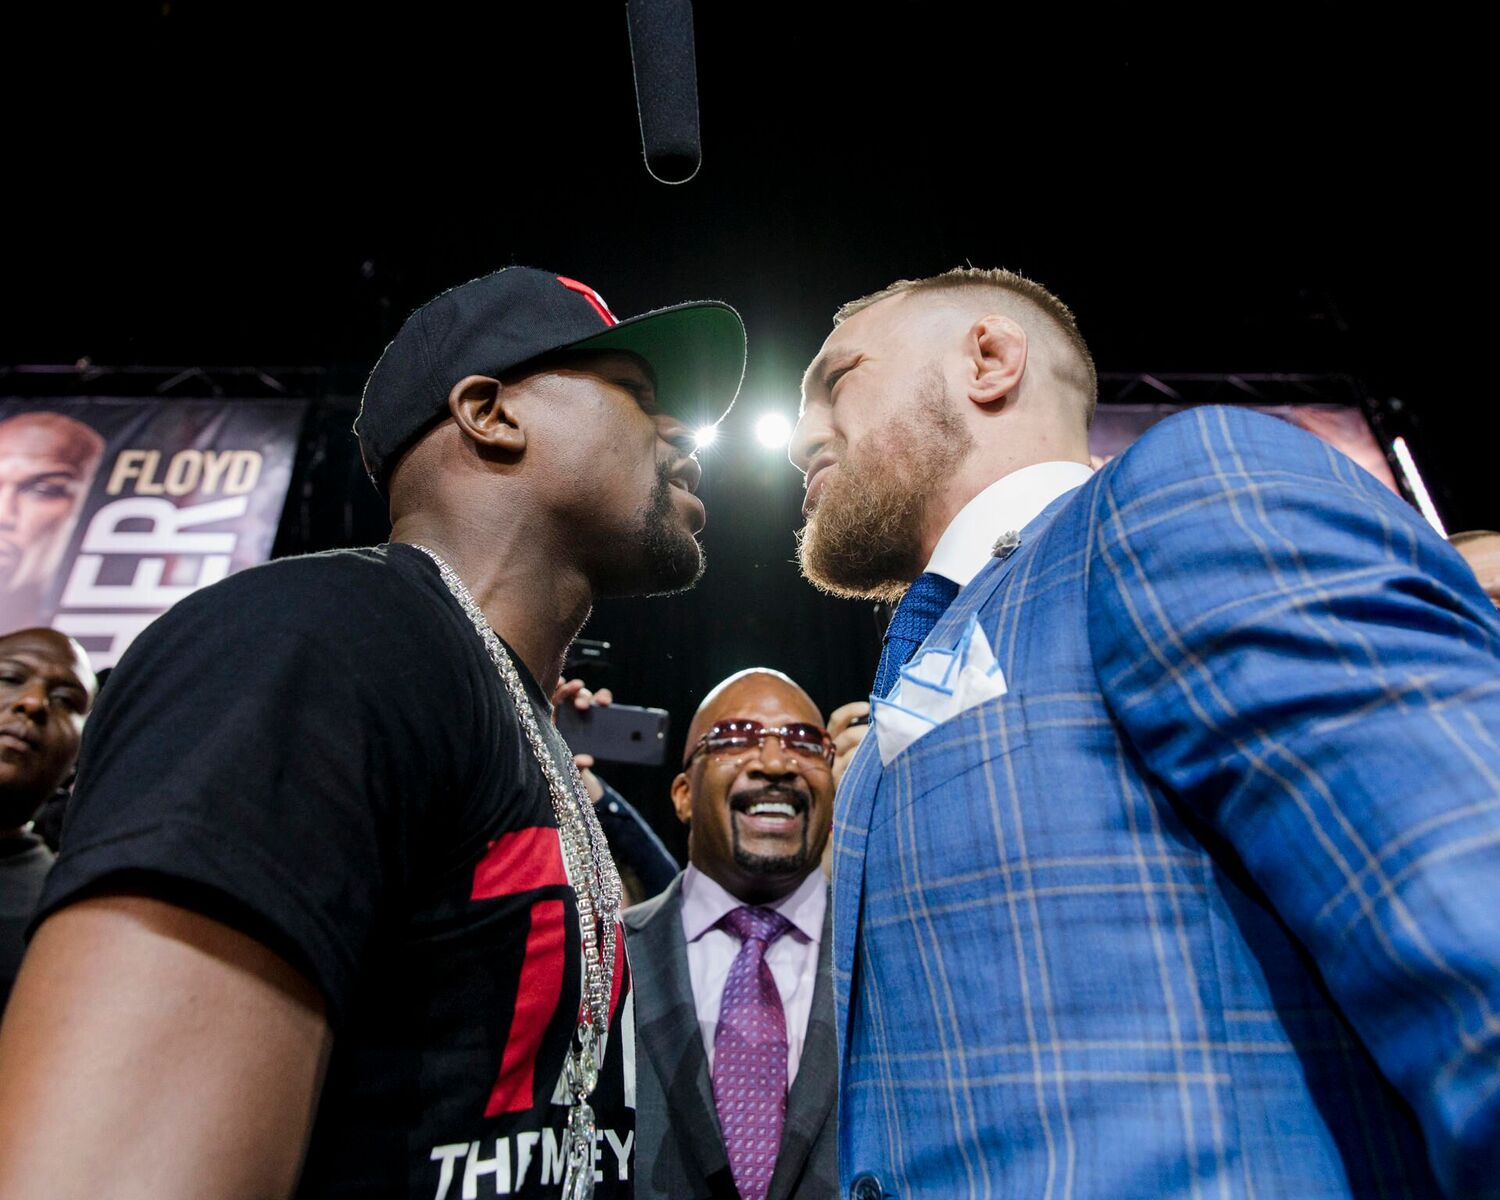 Floyd Mayweather Jr.: Fighting is about fortune over fame